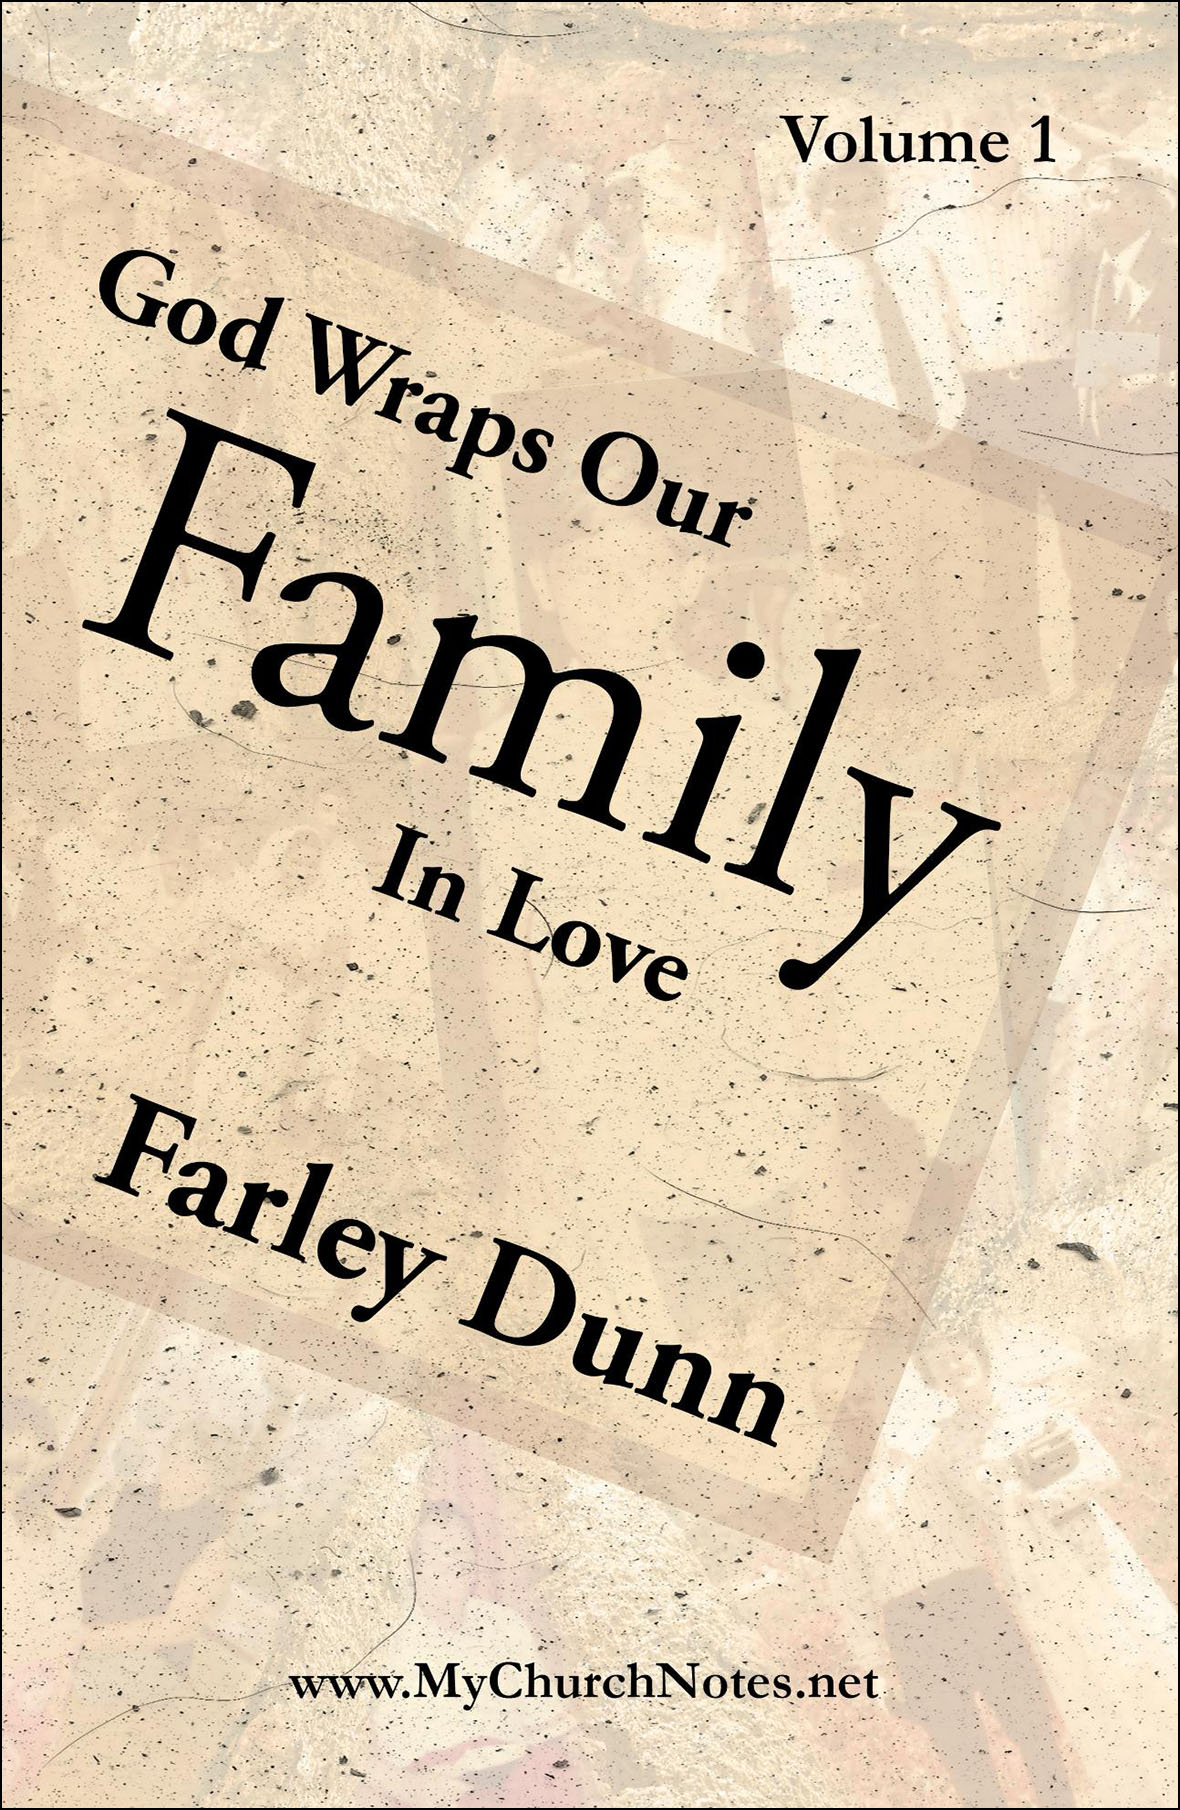 God Wraps Our Family Cover for web insertion Vol 1